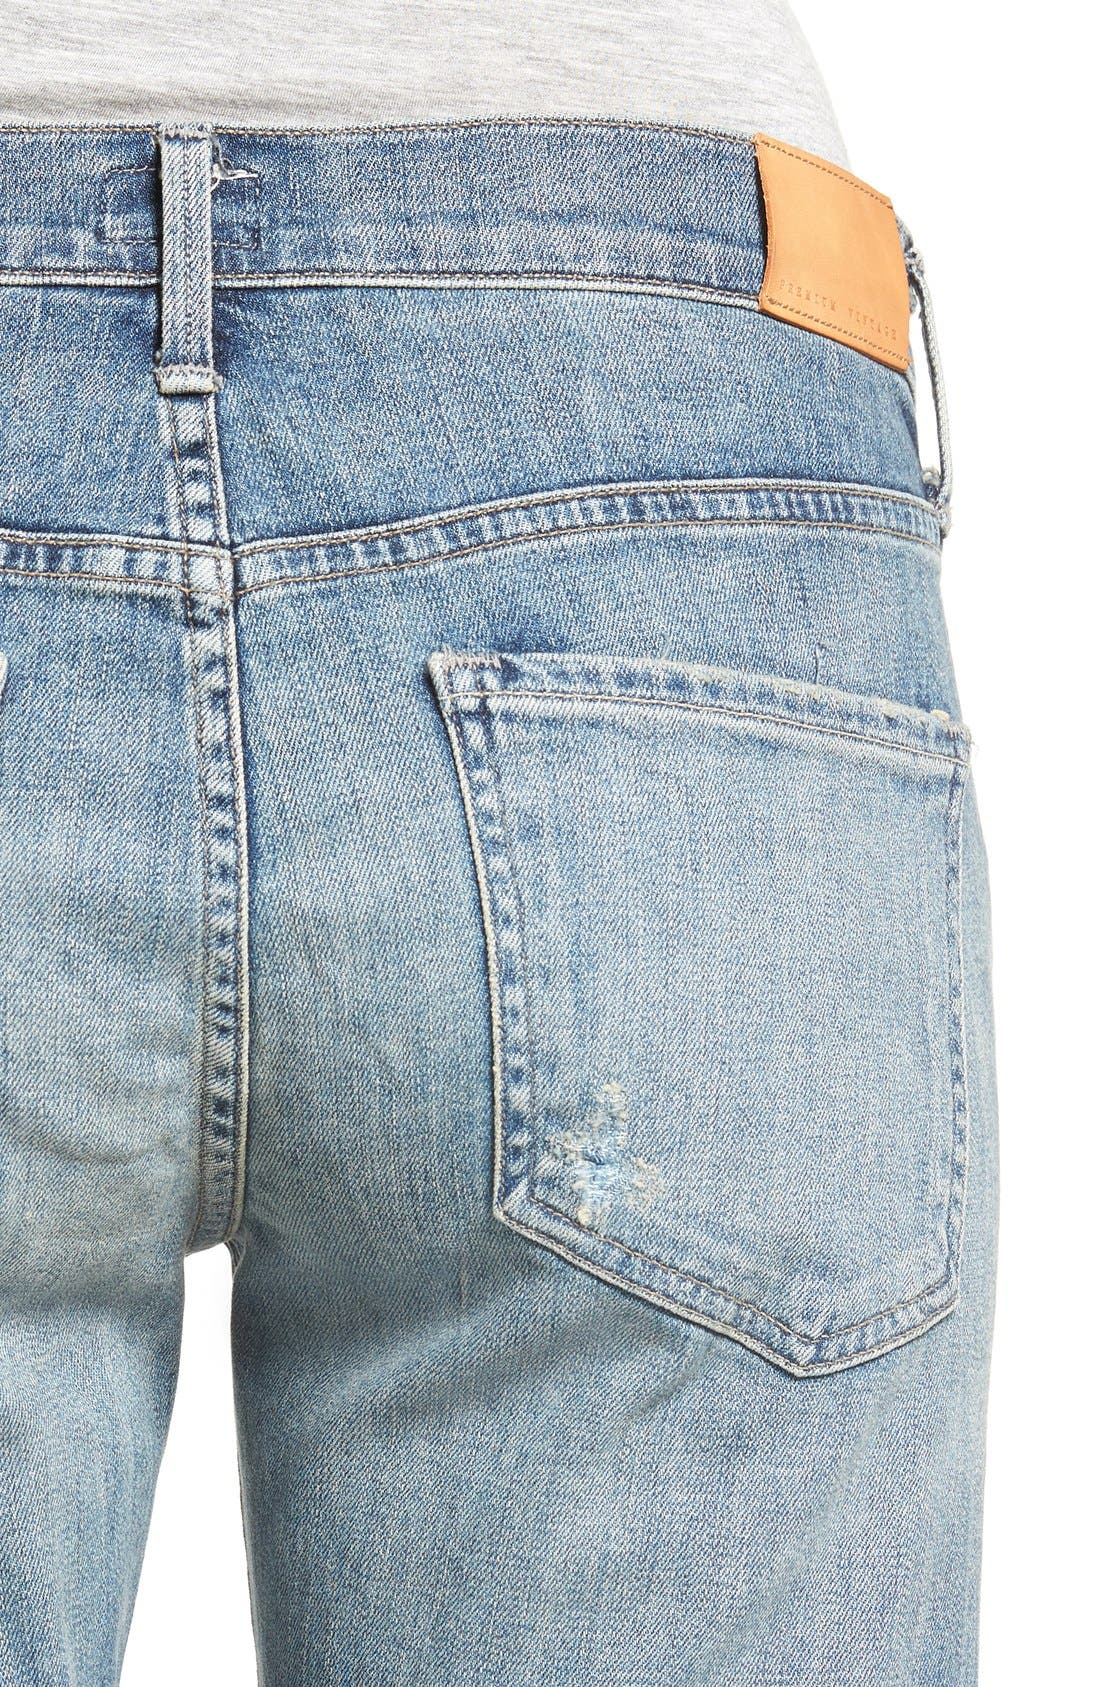 CITIZENS OF HUMANITY,                             'Emerson' Ripped Slim Boyfriend Jeans,                             Alternate thumbnail 4, color,                             469